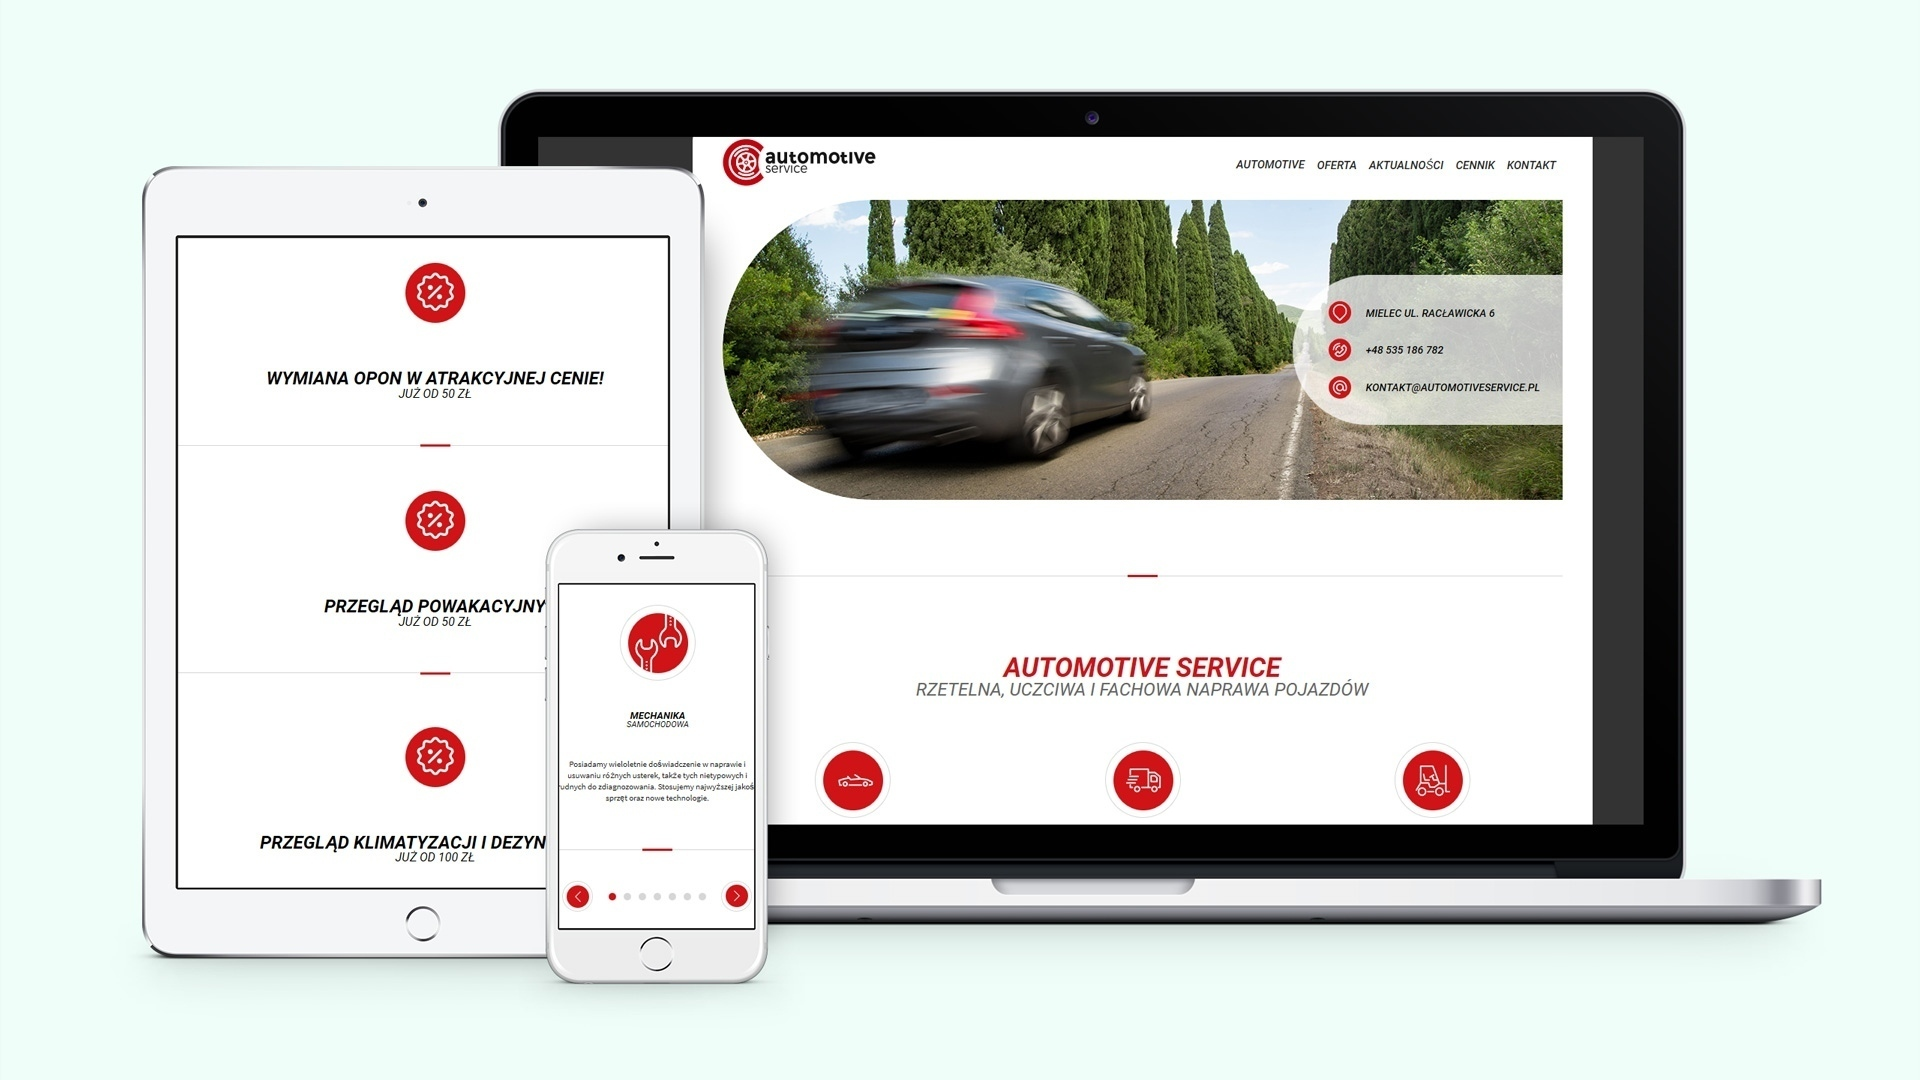 Automotive Service - Strona internetowa